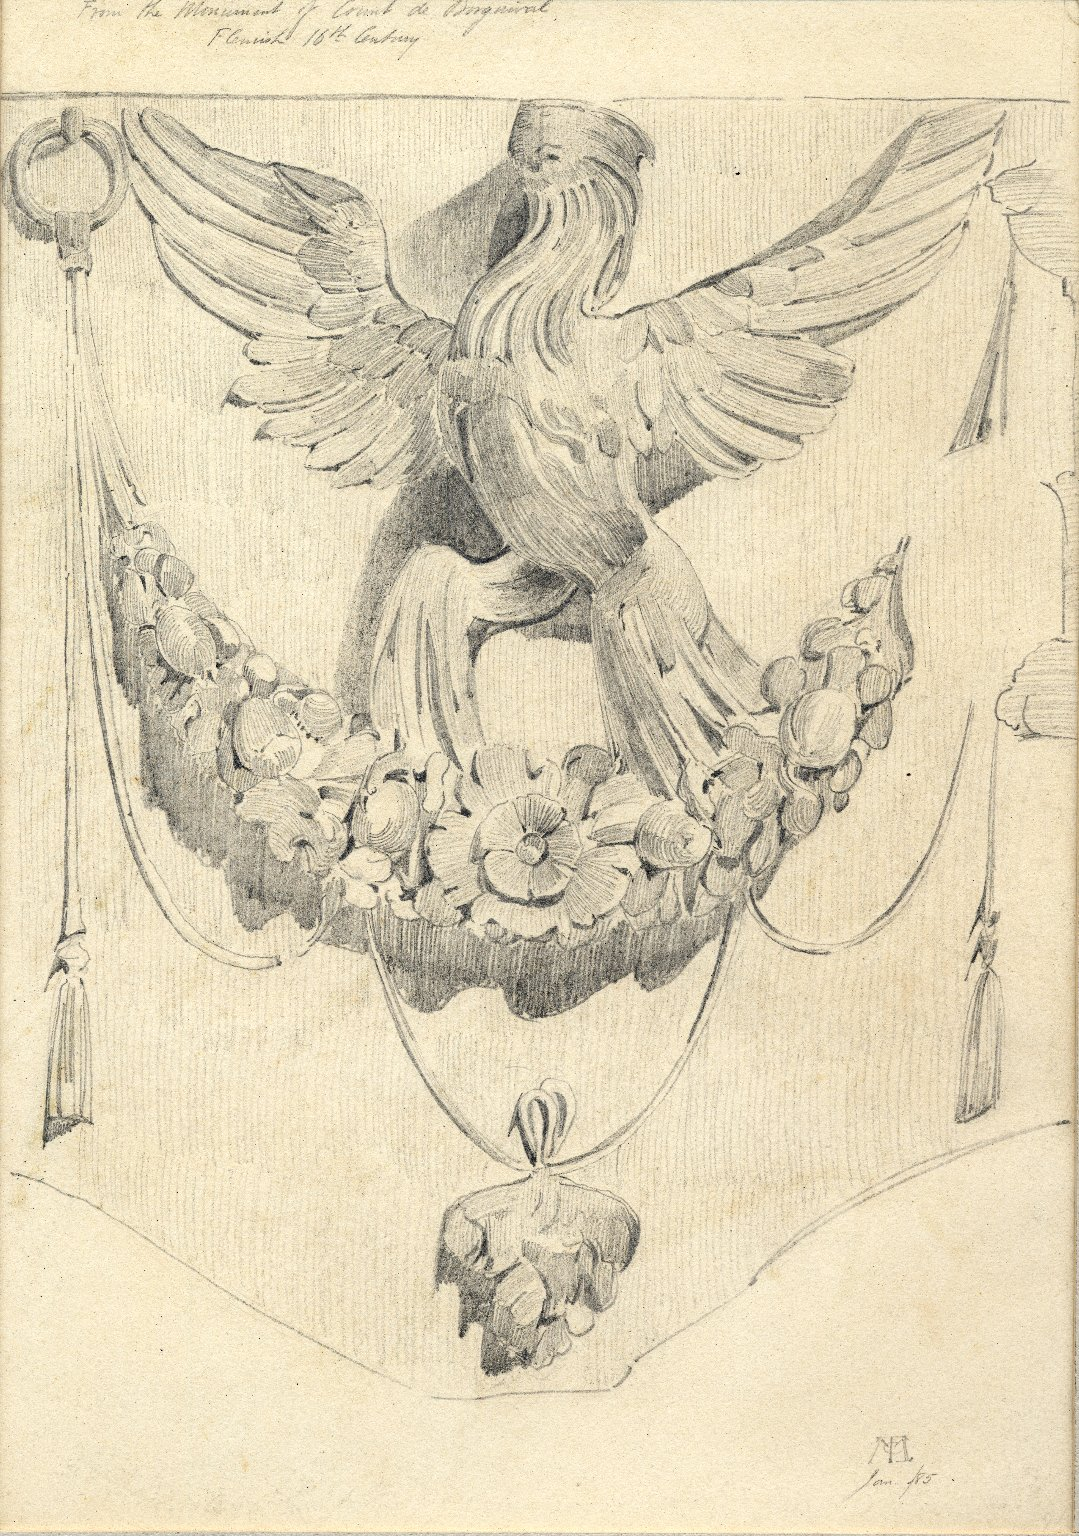 Bird design from Monument of the Count de Borgnival